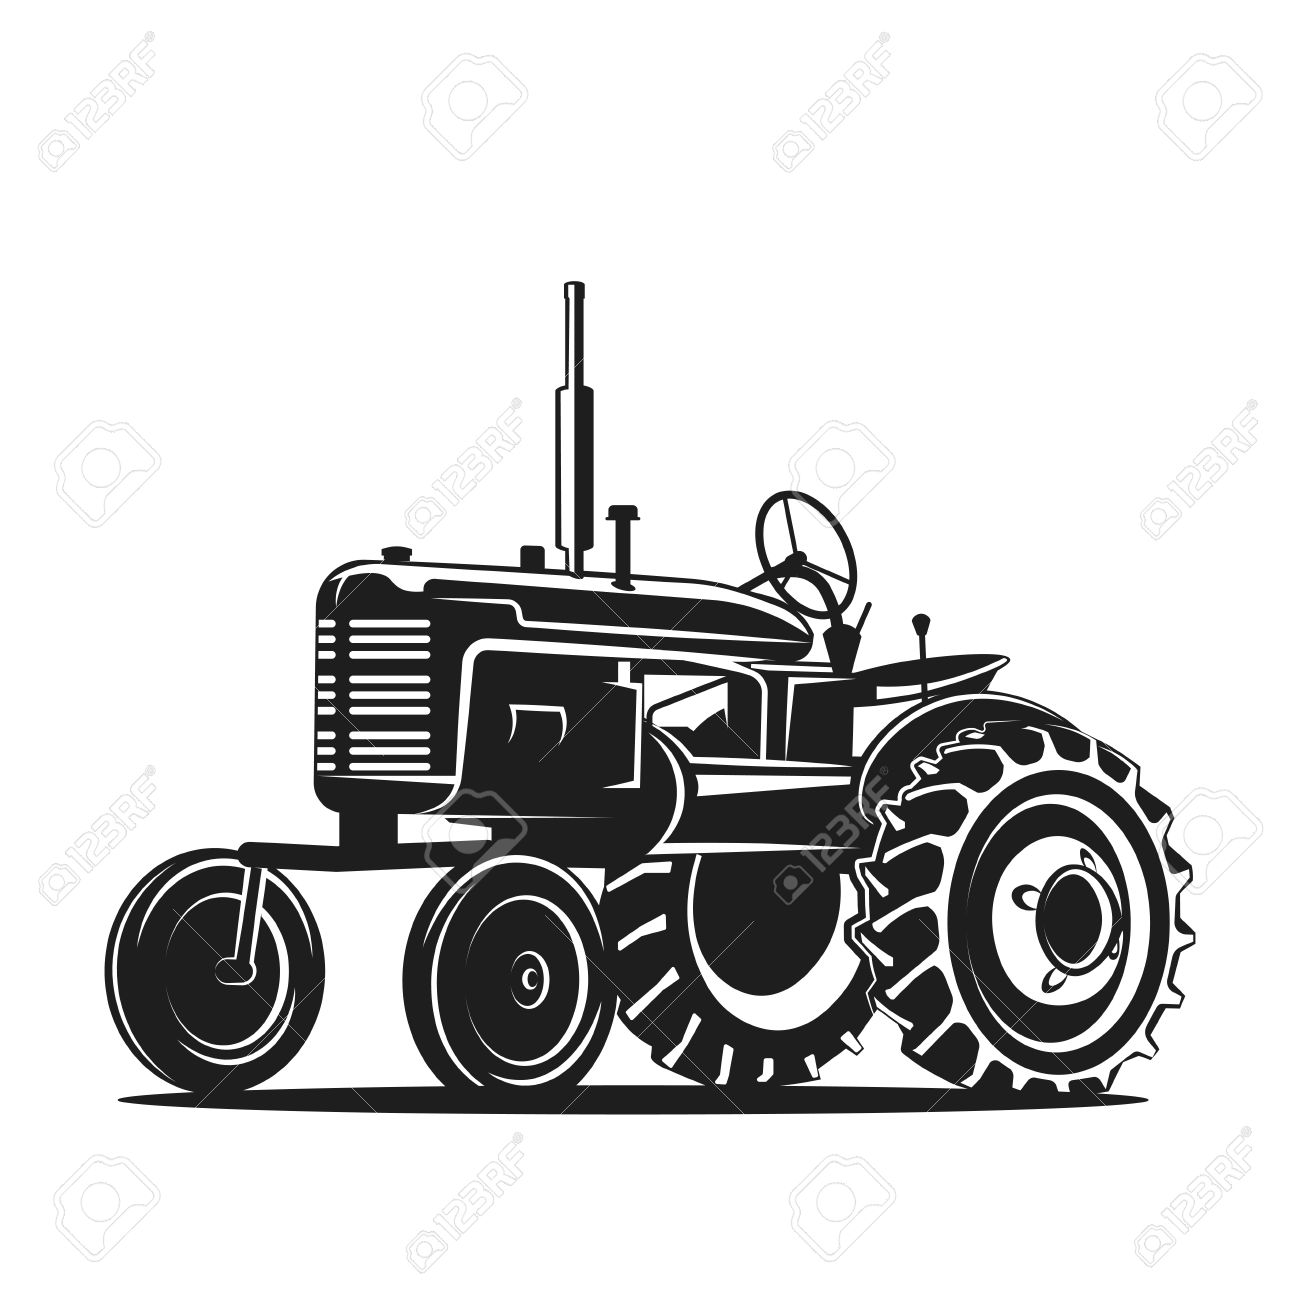 Farmall Tractor Silhouette at GetDrawings.com.